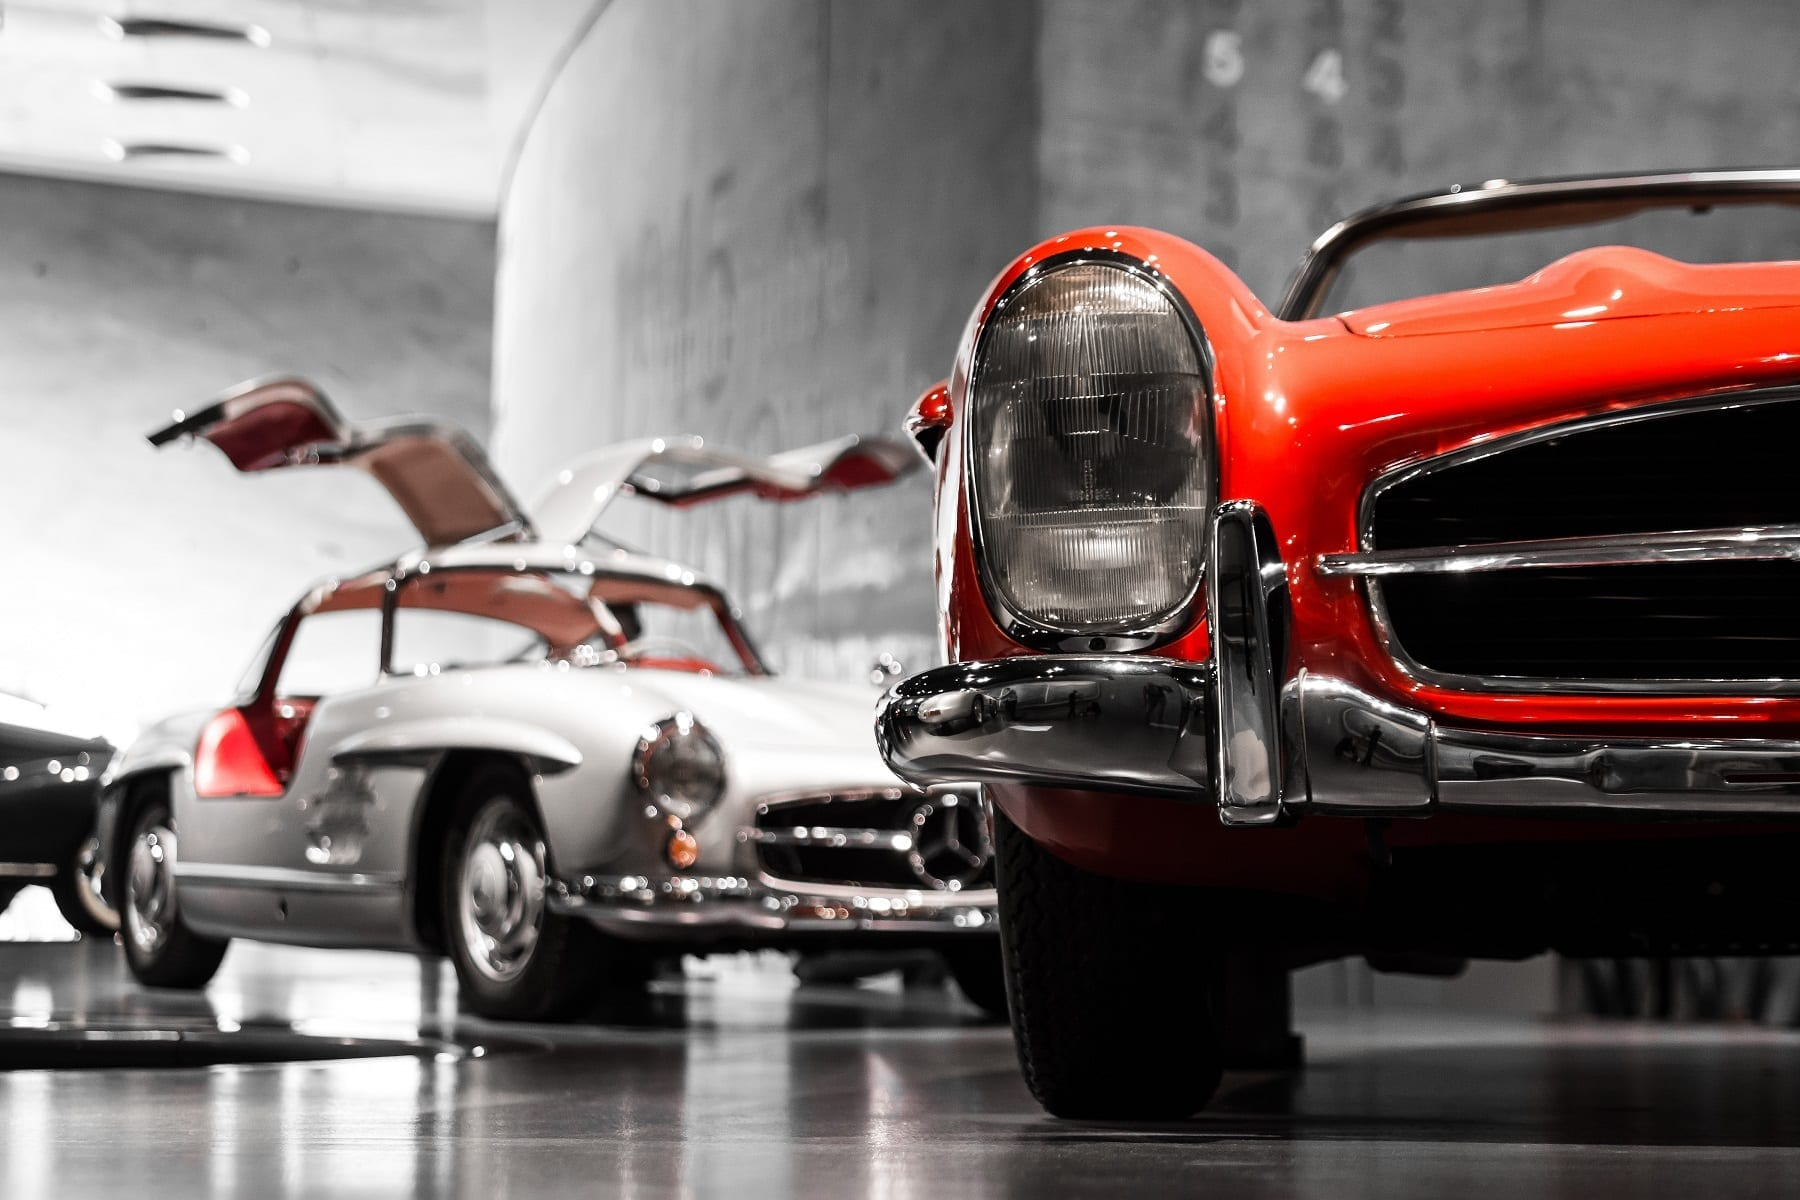 Classic Cars Prices vs Exchange Rate Impacts at Auctions - jg photography VOsy vH3V2c unsplash